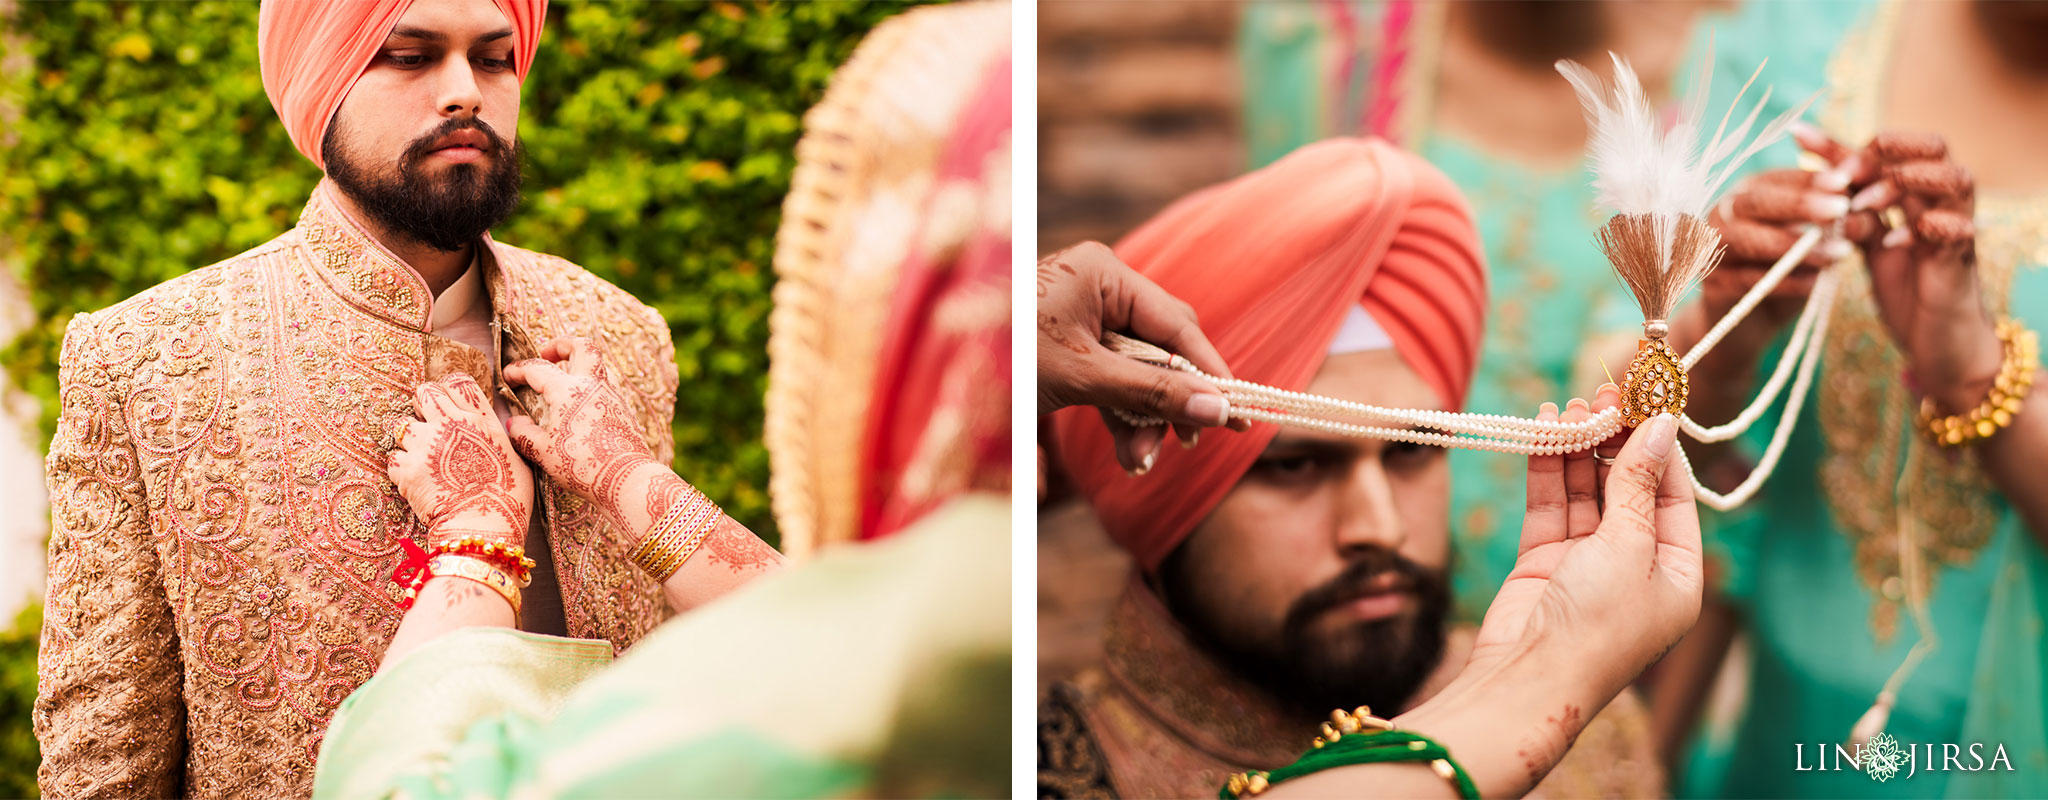 09 gurdwara sahib san jose punjabi sikh indian wedding photography